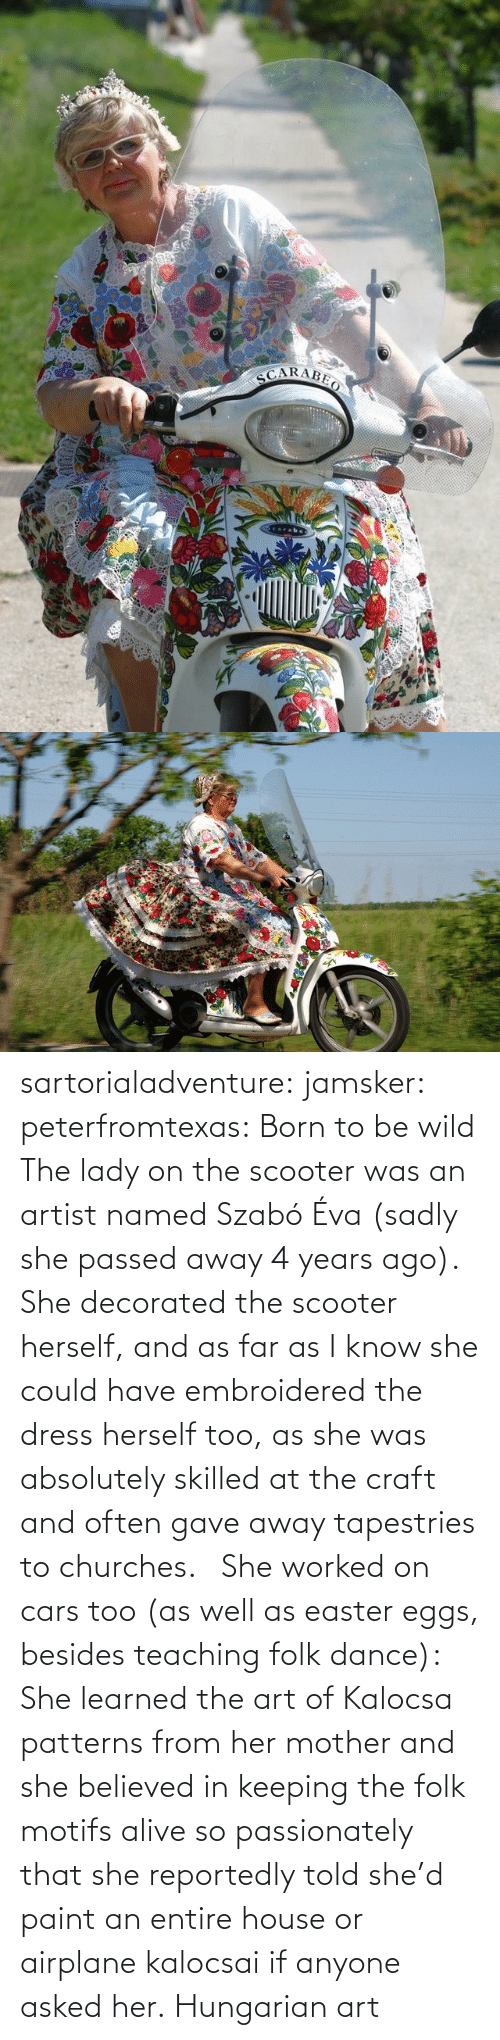 her: sartorialadventure: jamsker:  peterfromtexas: Born to be wild The lady on the scooter was an artist named Szabó Éva (sadly she passed away 4 years ago). She decorated the scooter herself, and as far as I know she could have embroidered the dress herself too, as she was absolutely skilled at the craft and often gave away tapestries to churches.   She worked on cars too (as well as easter eggs, besides teaching folk dance): She learned the art of Kalocsa patterns from her mother and she believed in keeping the folk motifs alive so passionately that she reportedly told she'd paint an entire house or airplane kalocsai if anyone asked her.  Hungarian art